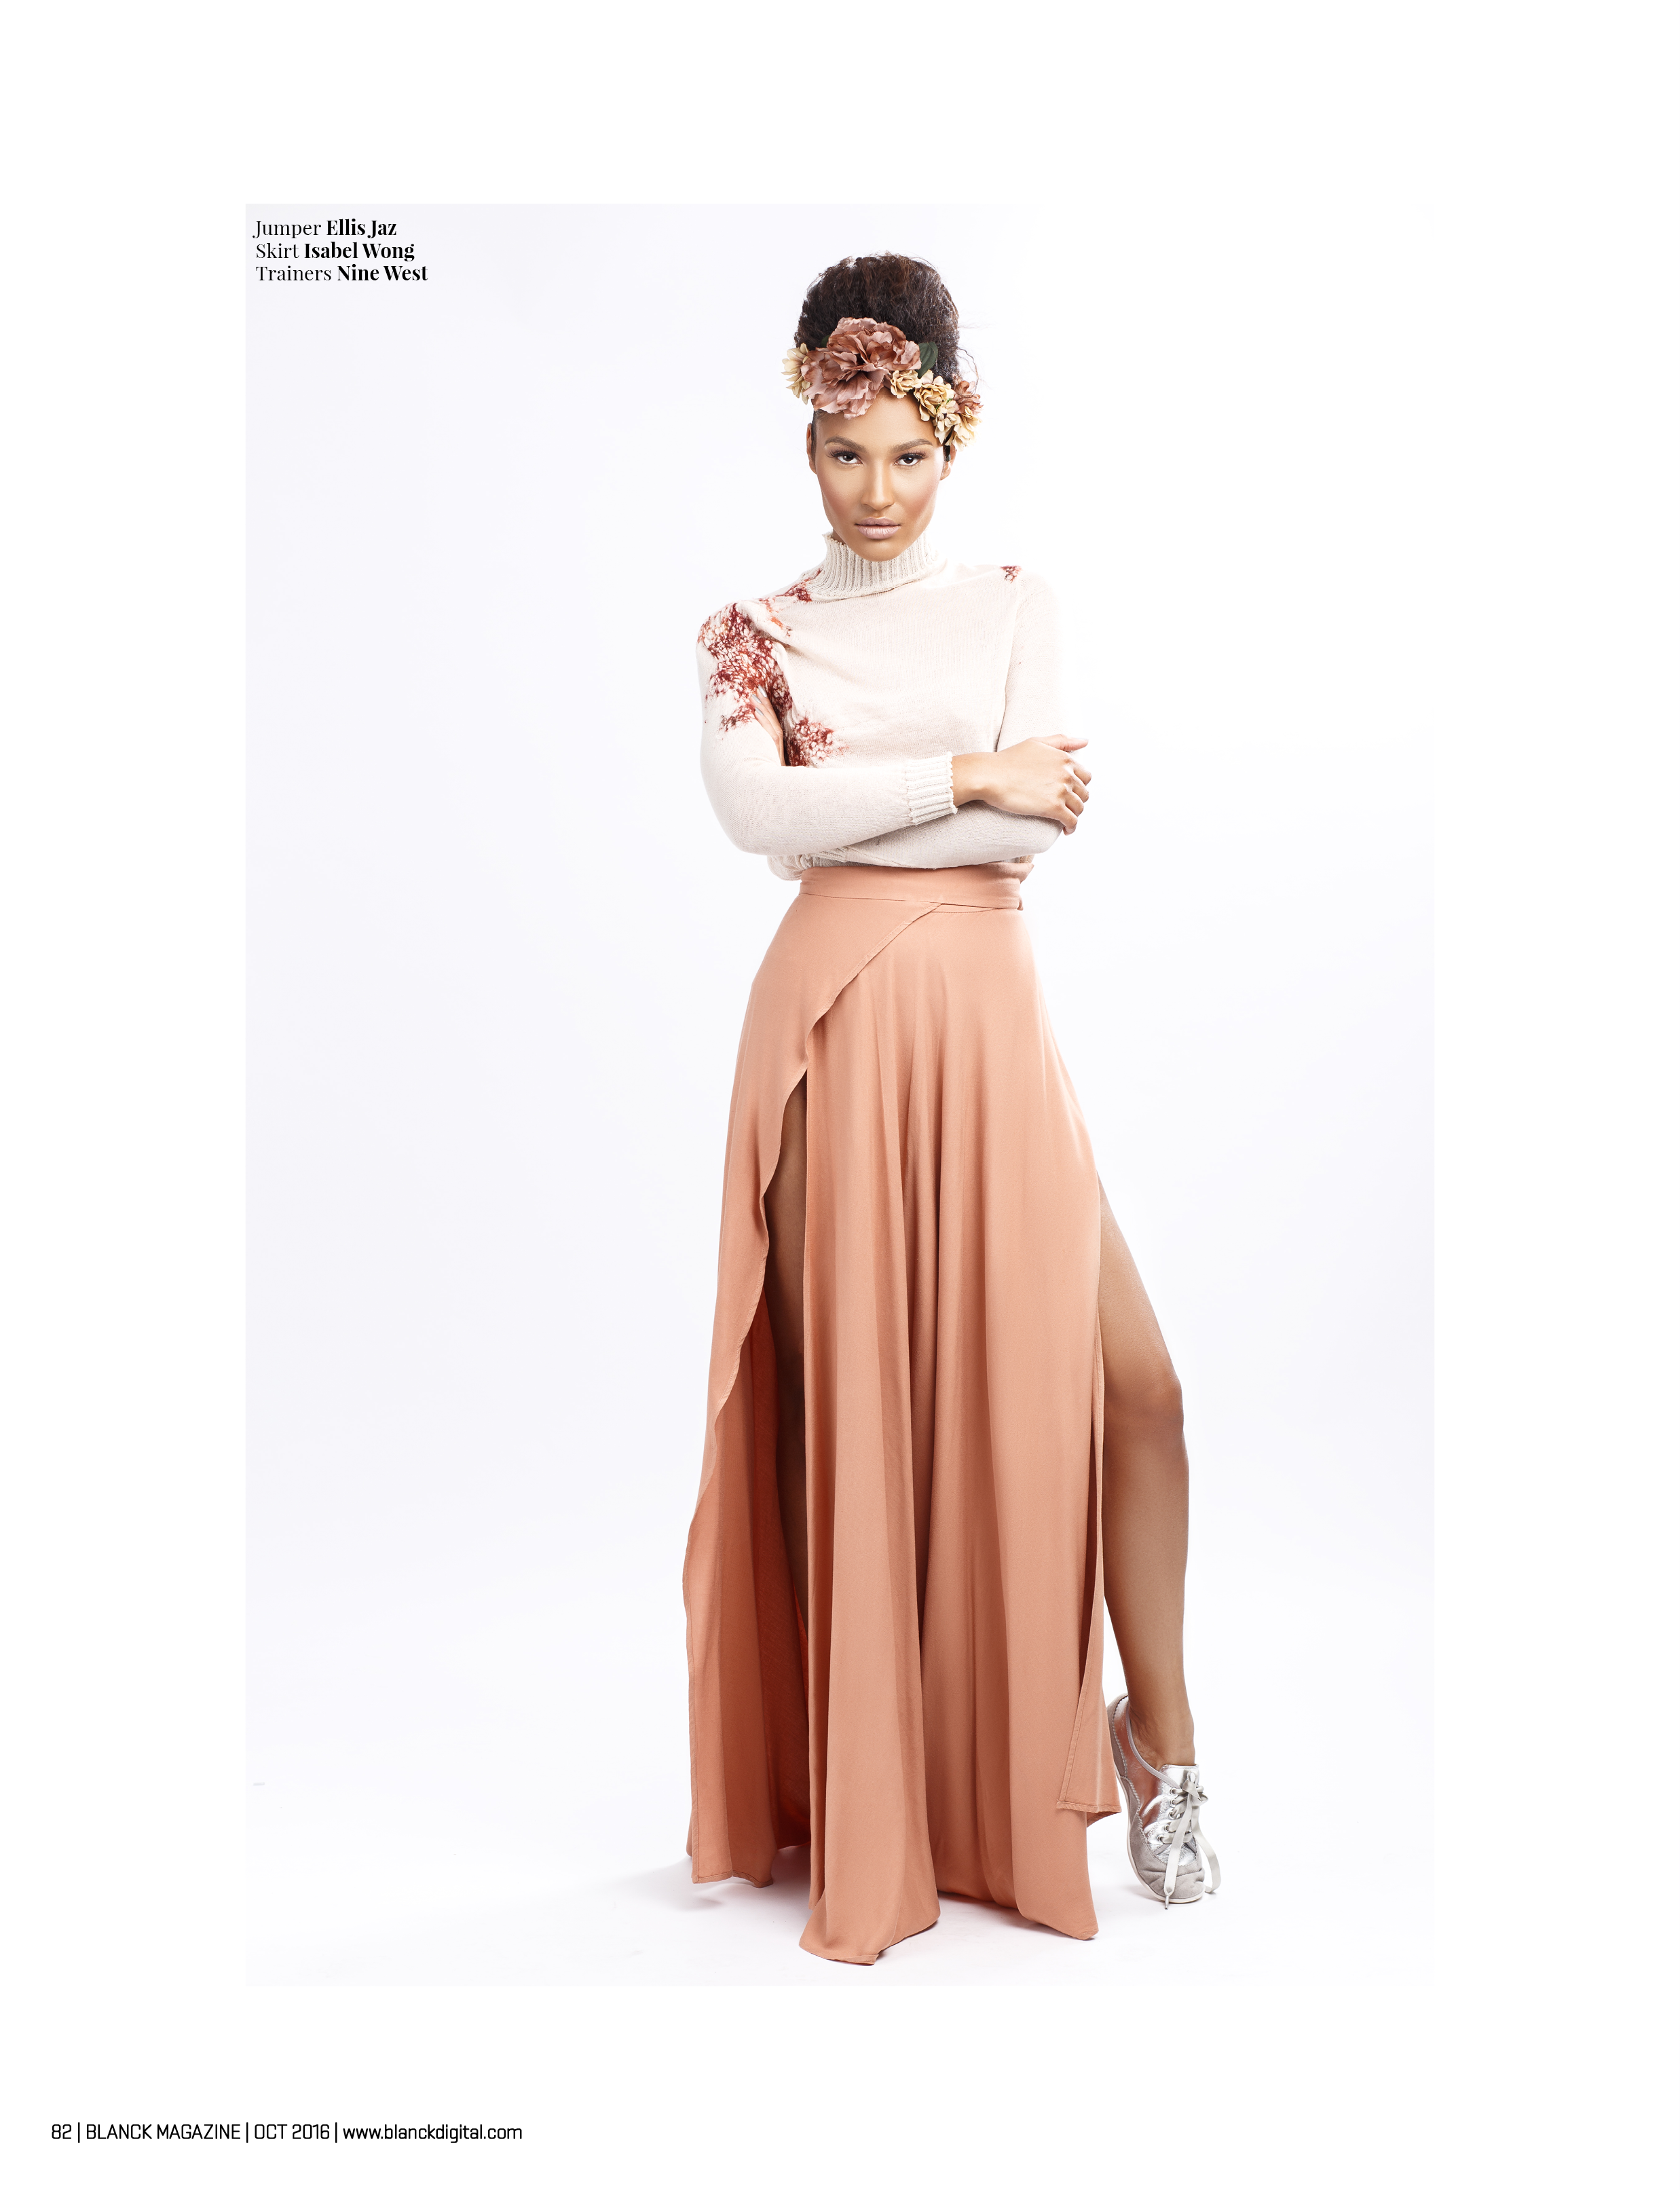 BLANCK Magazine Issue 8 82 Isabel Wong Maxi Skirt Split.png